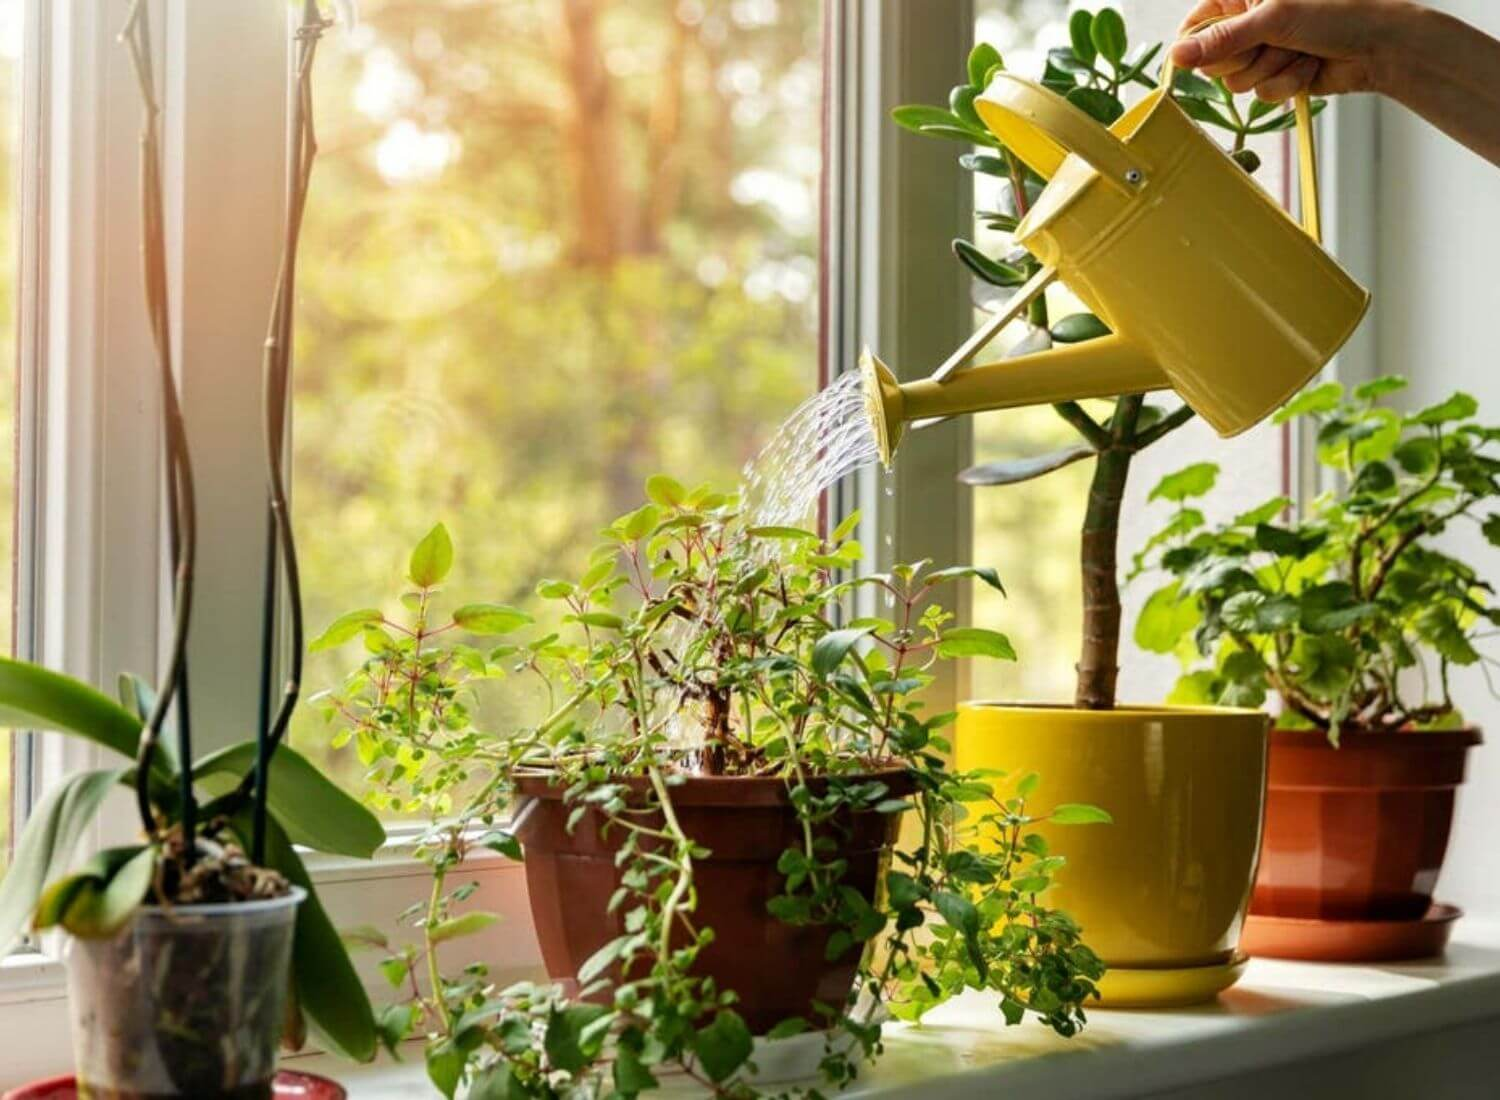 Top 15 Best Home Plants For A Better Lifestyle